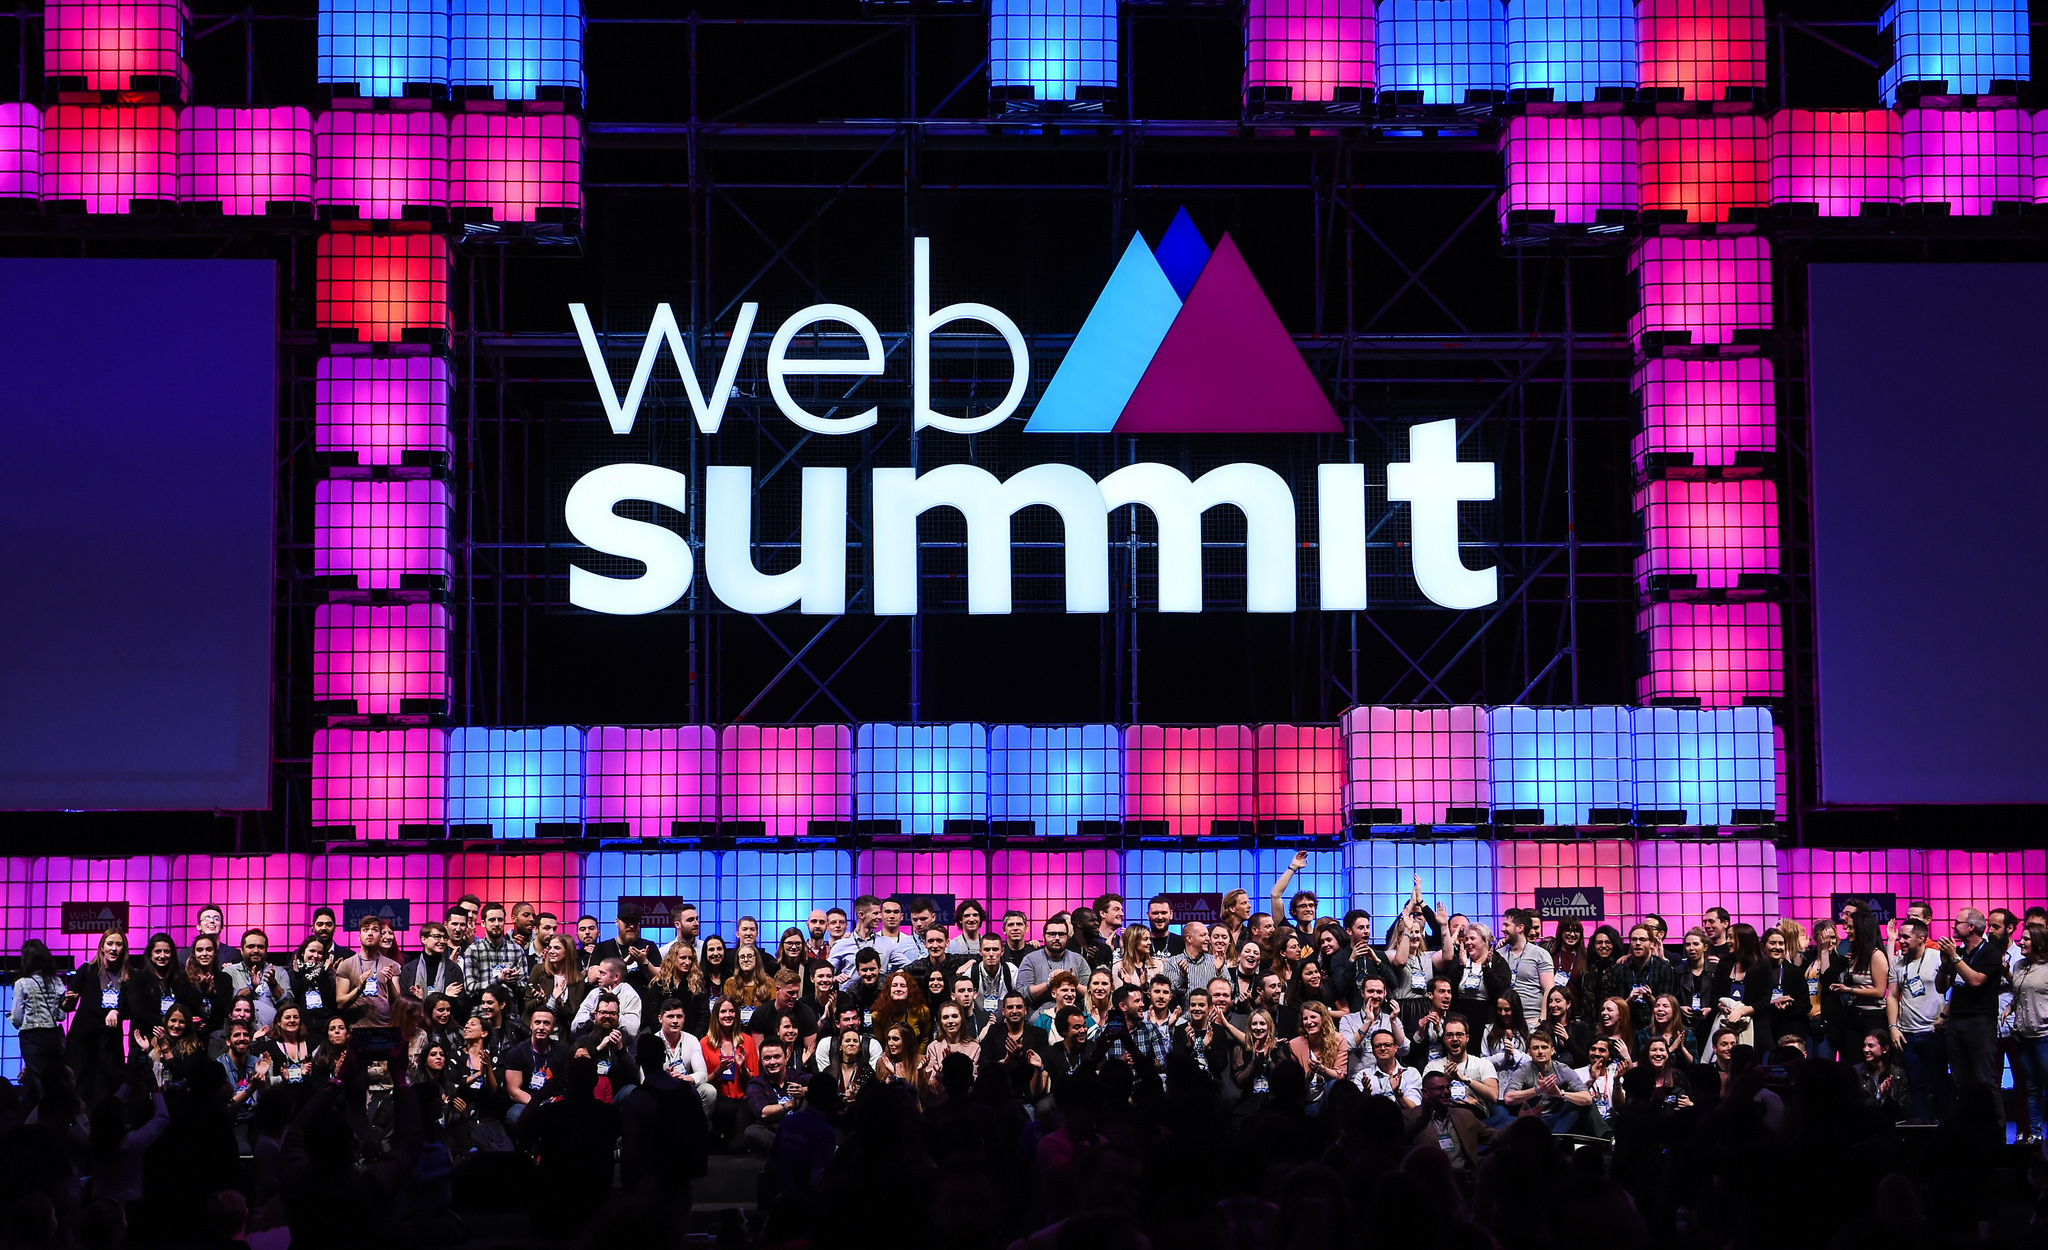 Web Summit 2018: Mi experiencia